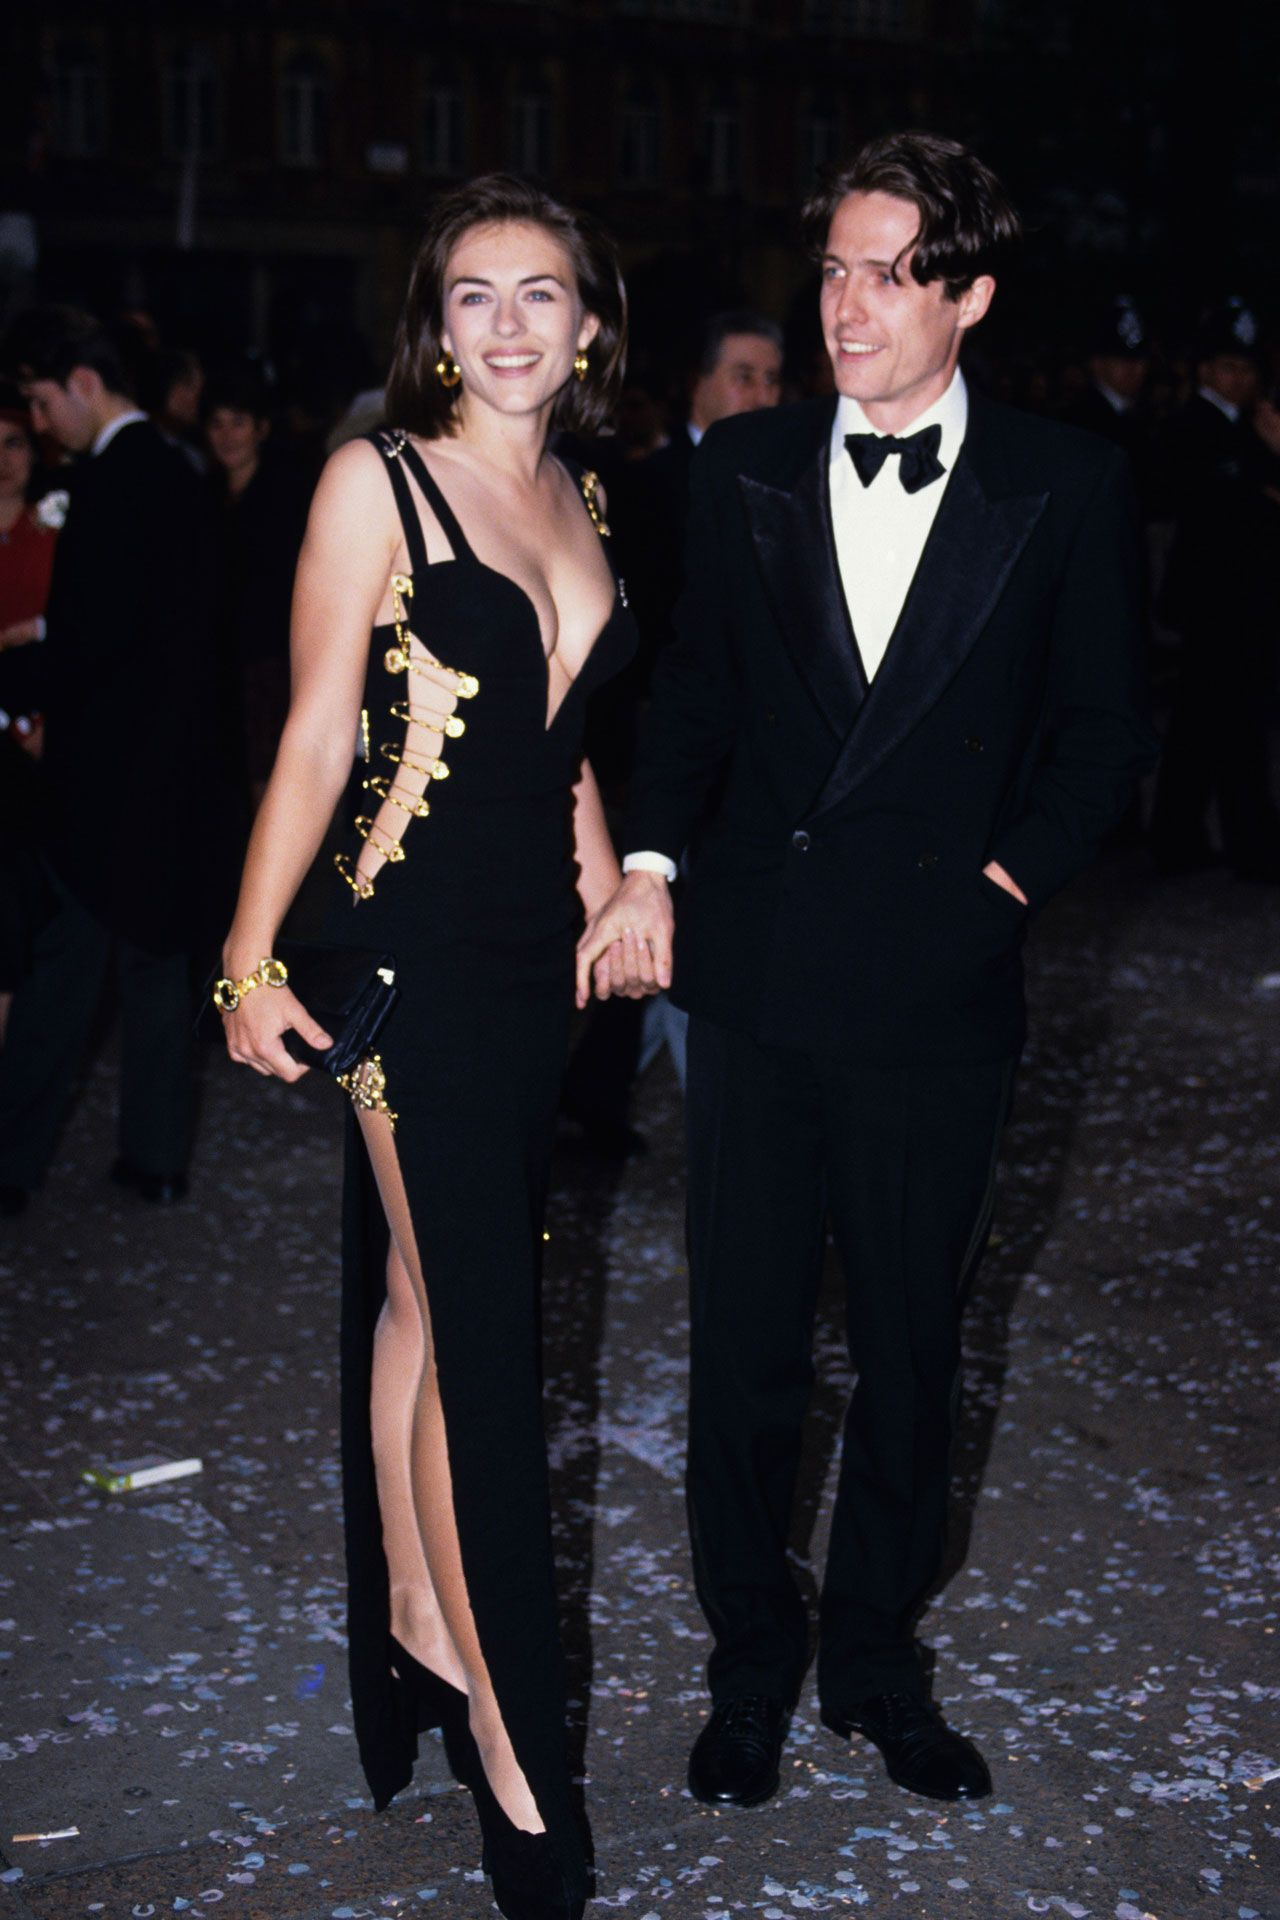 Liz Hurley Wearing That Dress By Versace 1994 Iconic Dresses Elizabeth Hurley Red Carpet Dresses Best